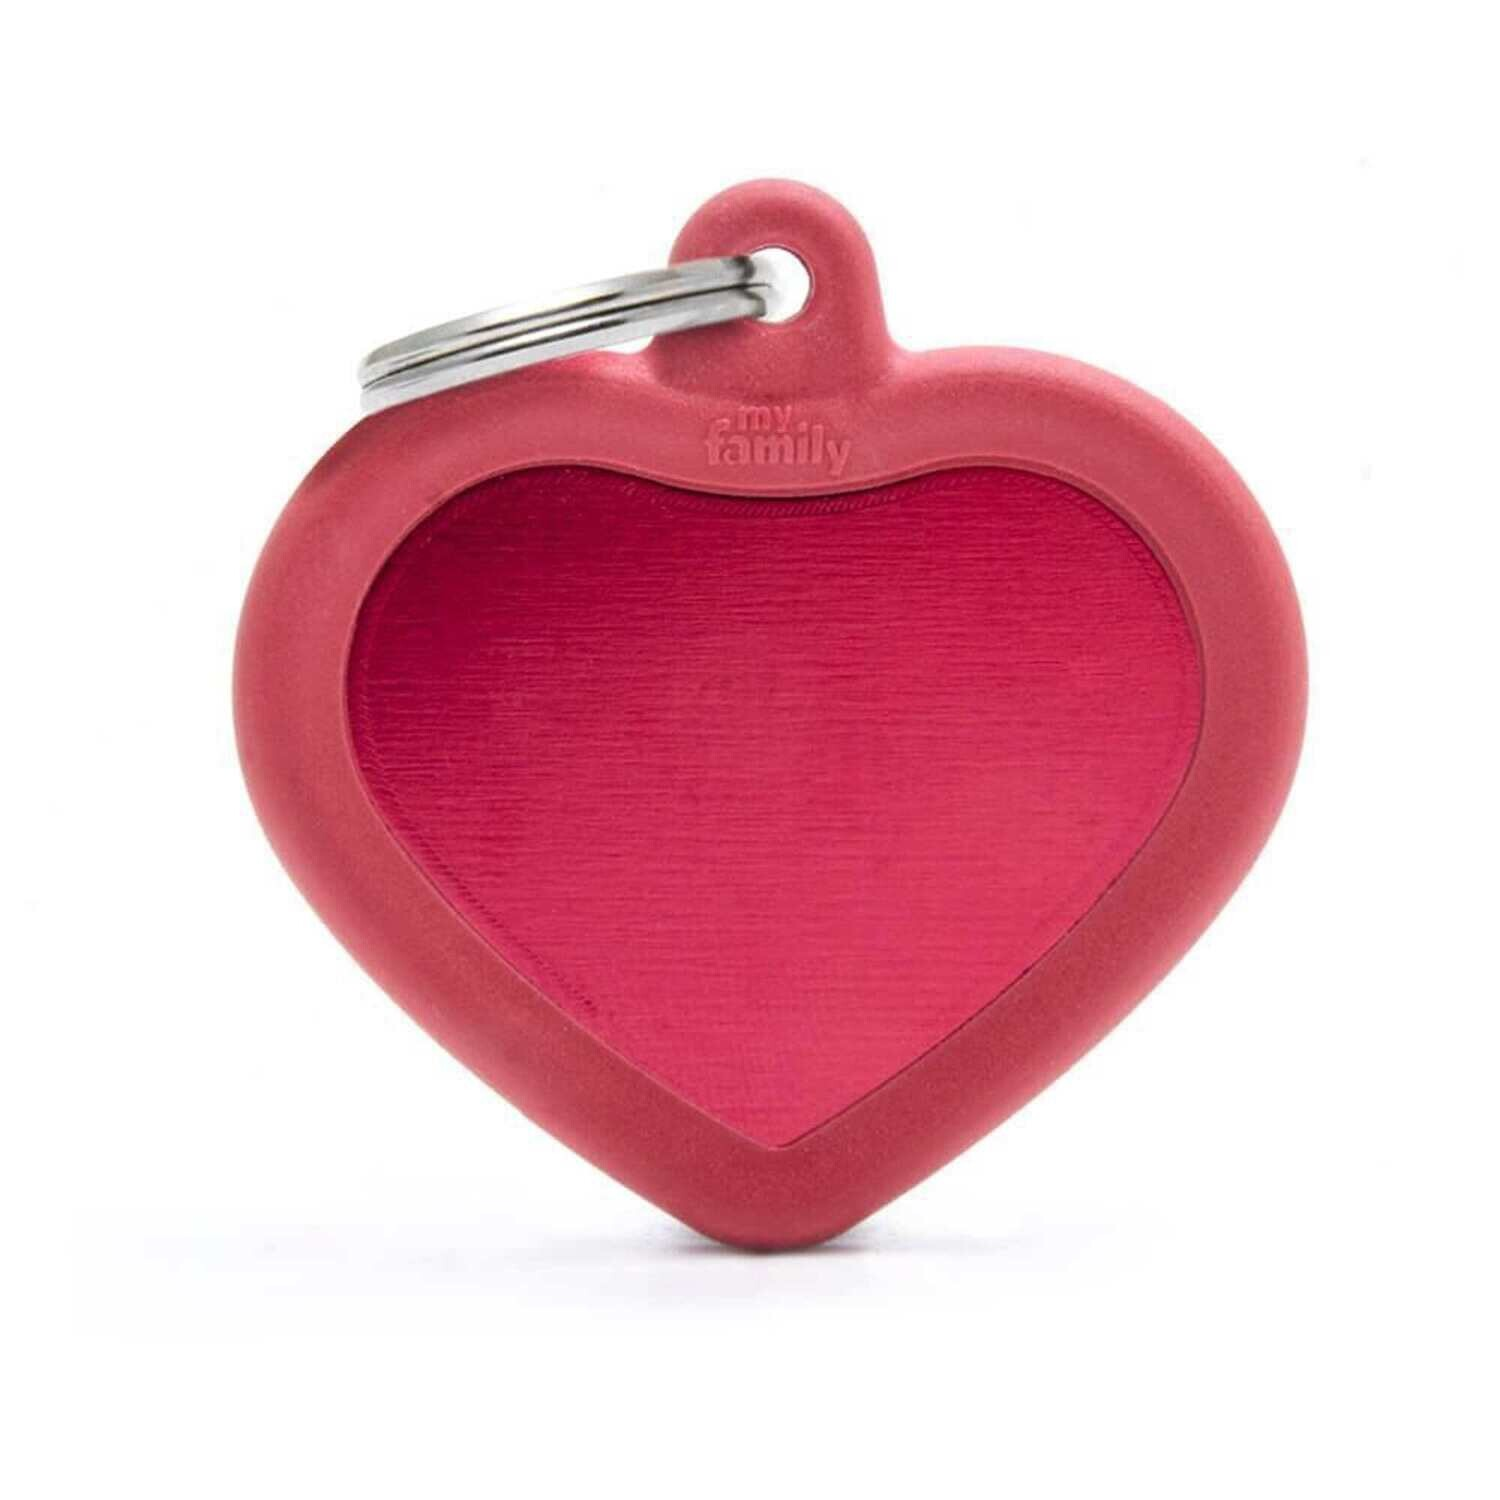 My Family Aluminium Red Heart with Rubber